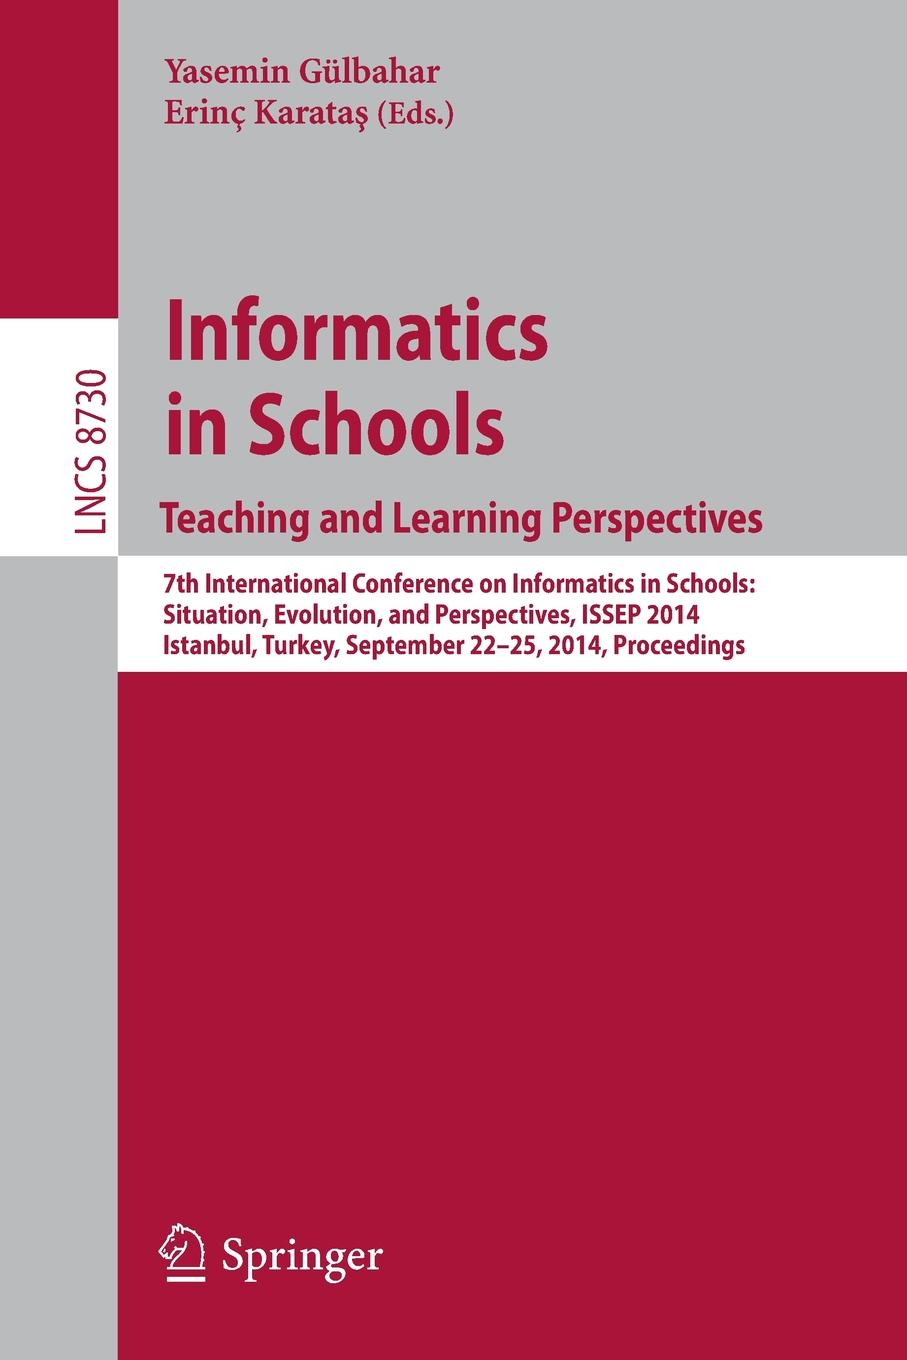 Informatics in SchoolsTeaching and Learning Perspectives. 7th International Conference on Informatics in Schools: Situation, Evolution, and Perspectives, ISSEP 2014, Istanbul, Turkey, September 22-25, 2014. Proceedings christian blum metaheuristics for string problems in bio informatics